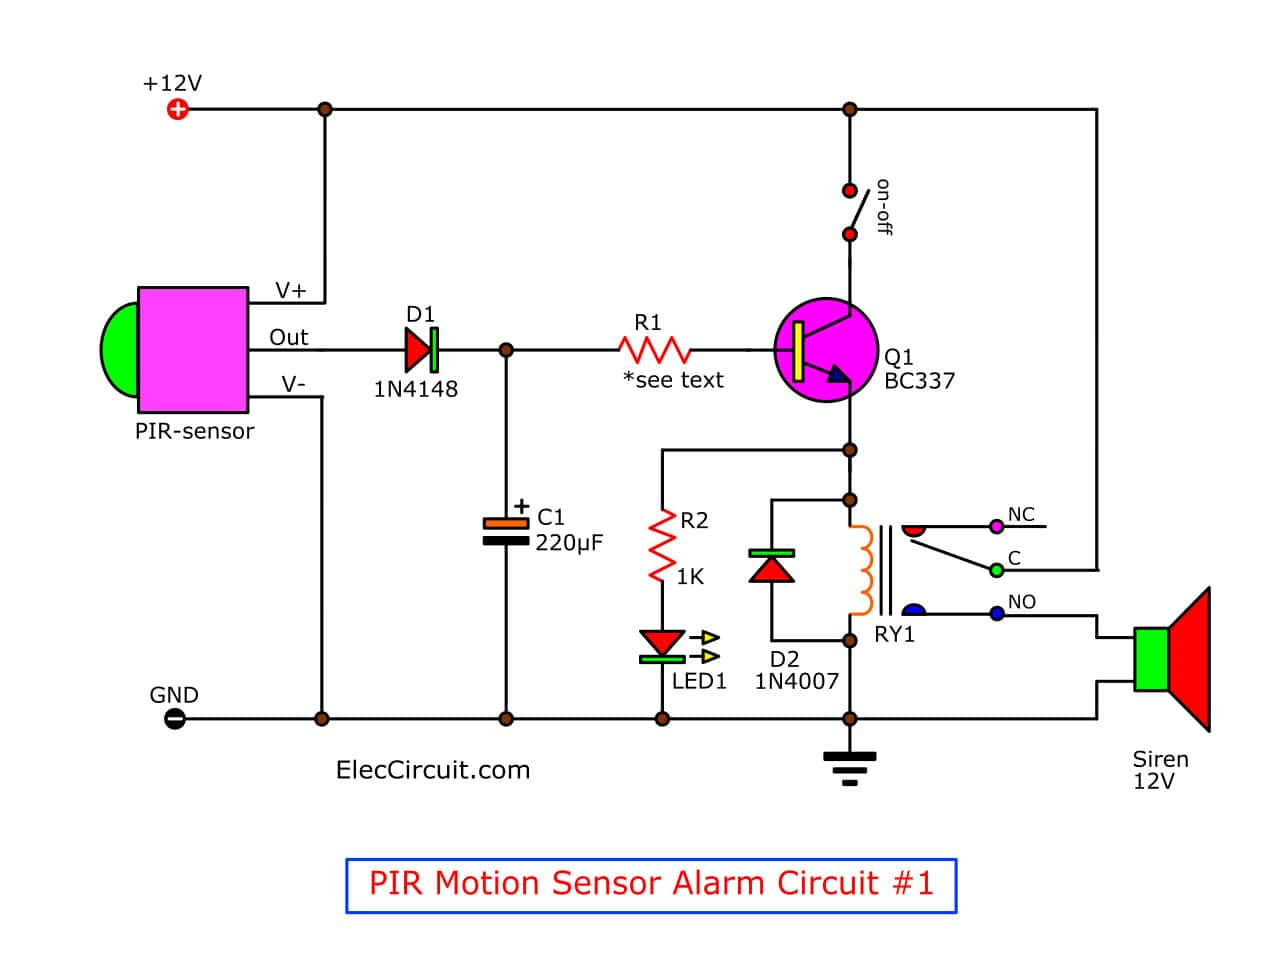 pir motion sensor alarm circuit rh eleccircuit com pir motion sensor schematic diagram motion detector schematic diagram